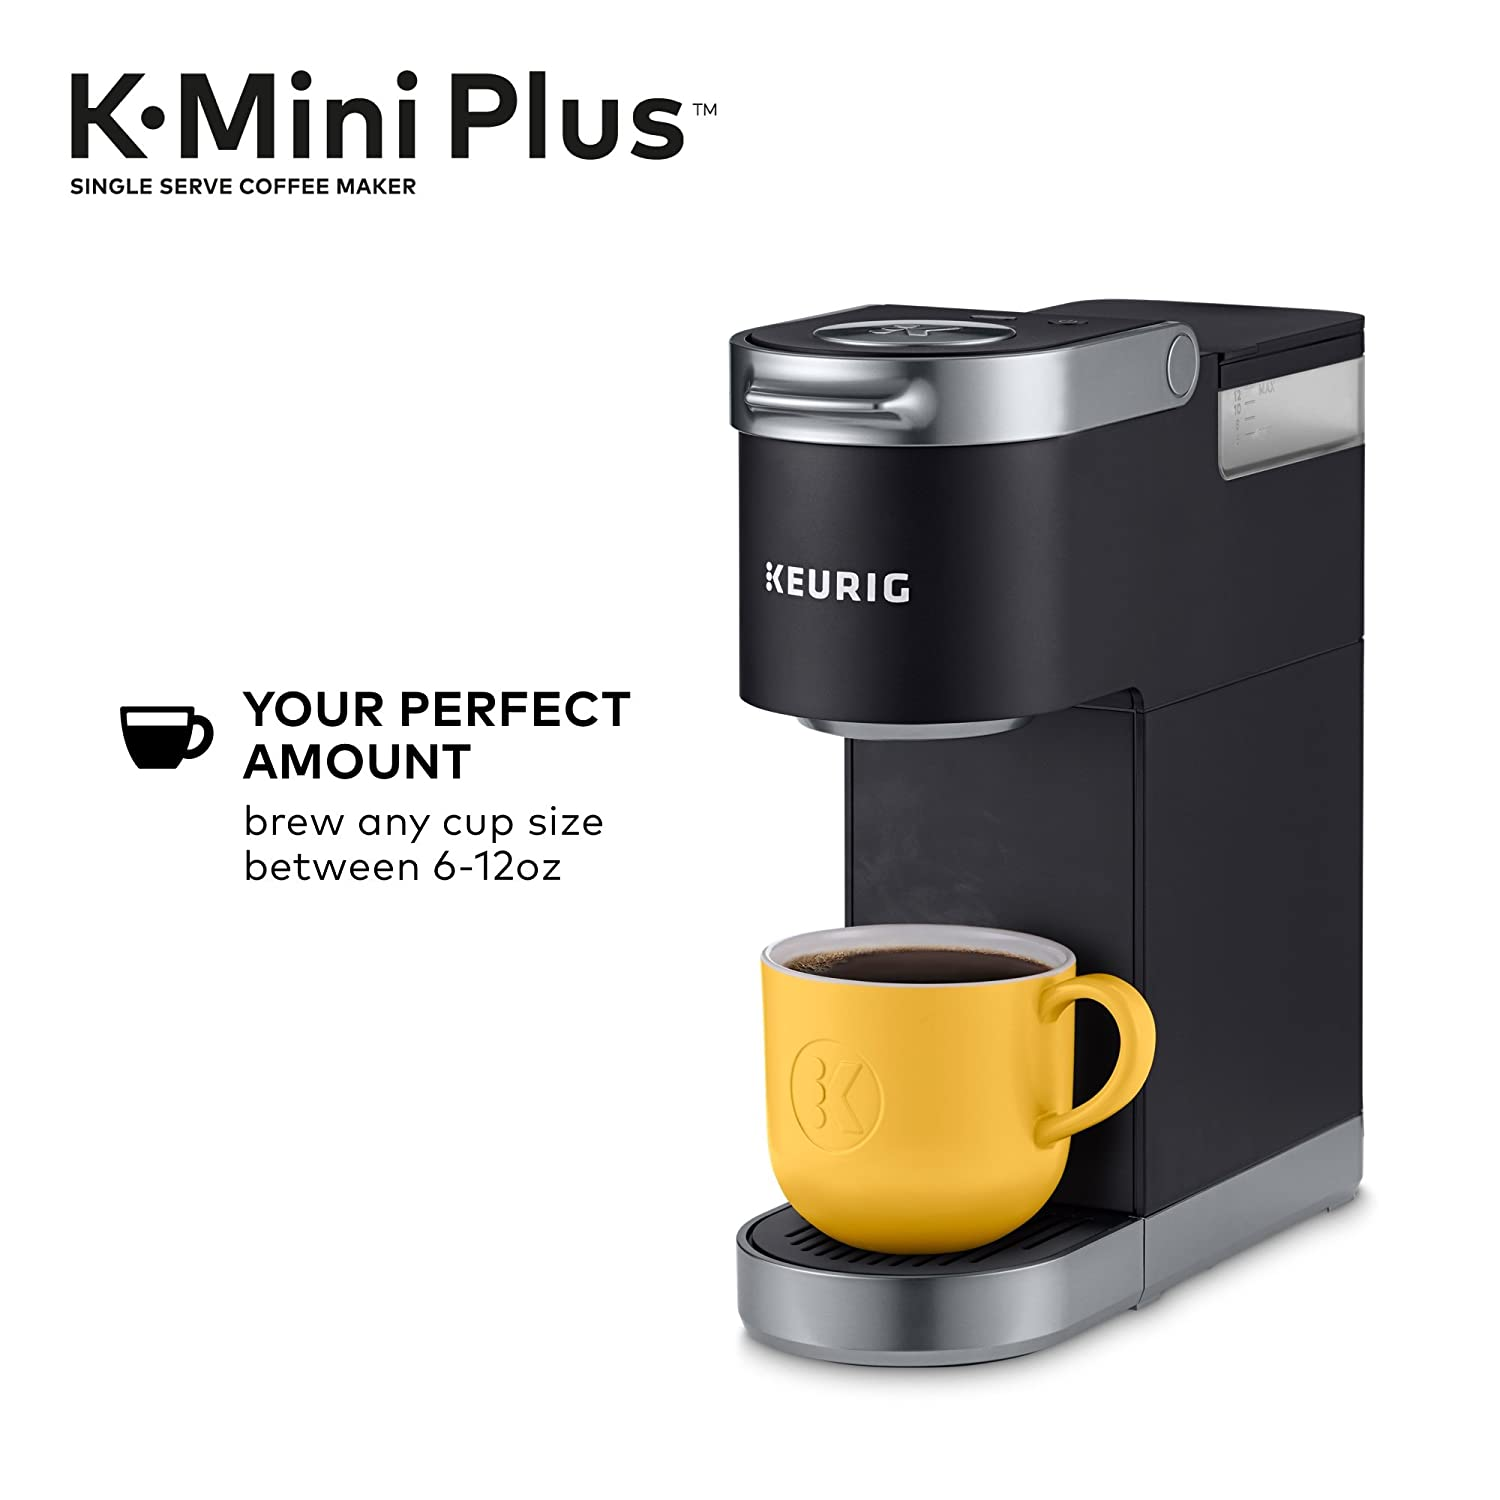 Cardinal Red with 6 to 12oz Brew Size Travel Mug Friendly Keurig K-Mini Plus Single Serve K-Cup Pod Coffee Maker Stores up to 9 K-Cup Pods